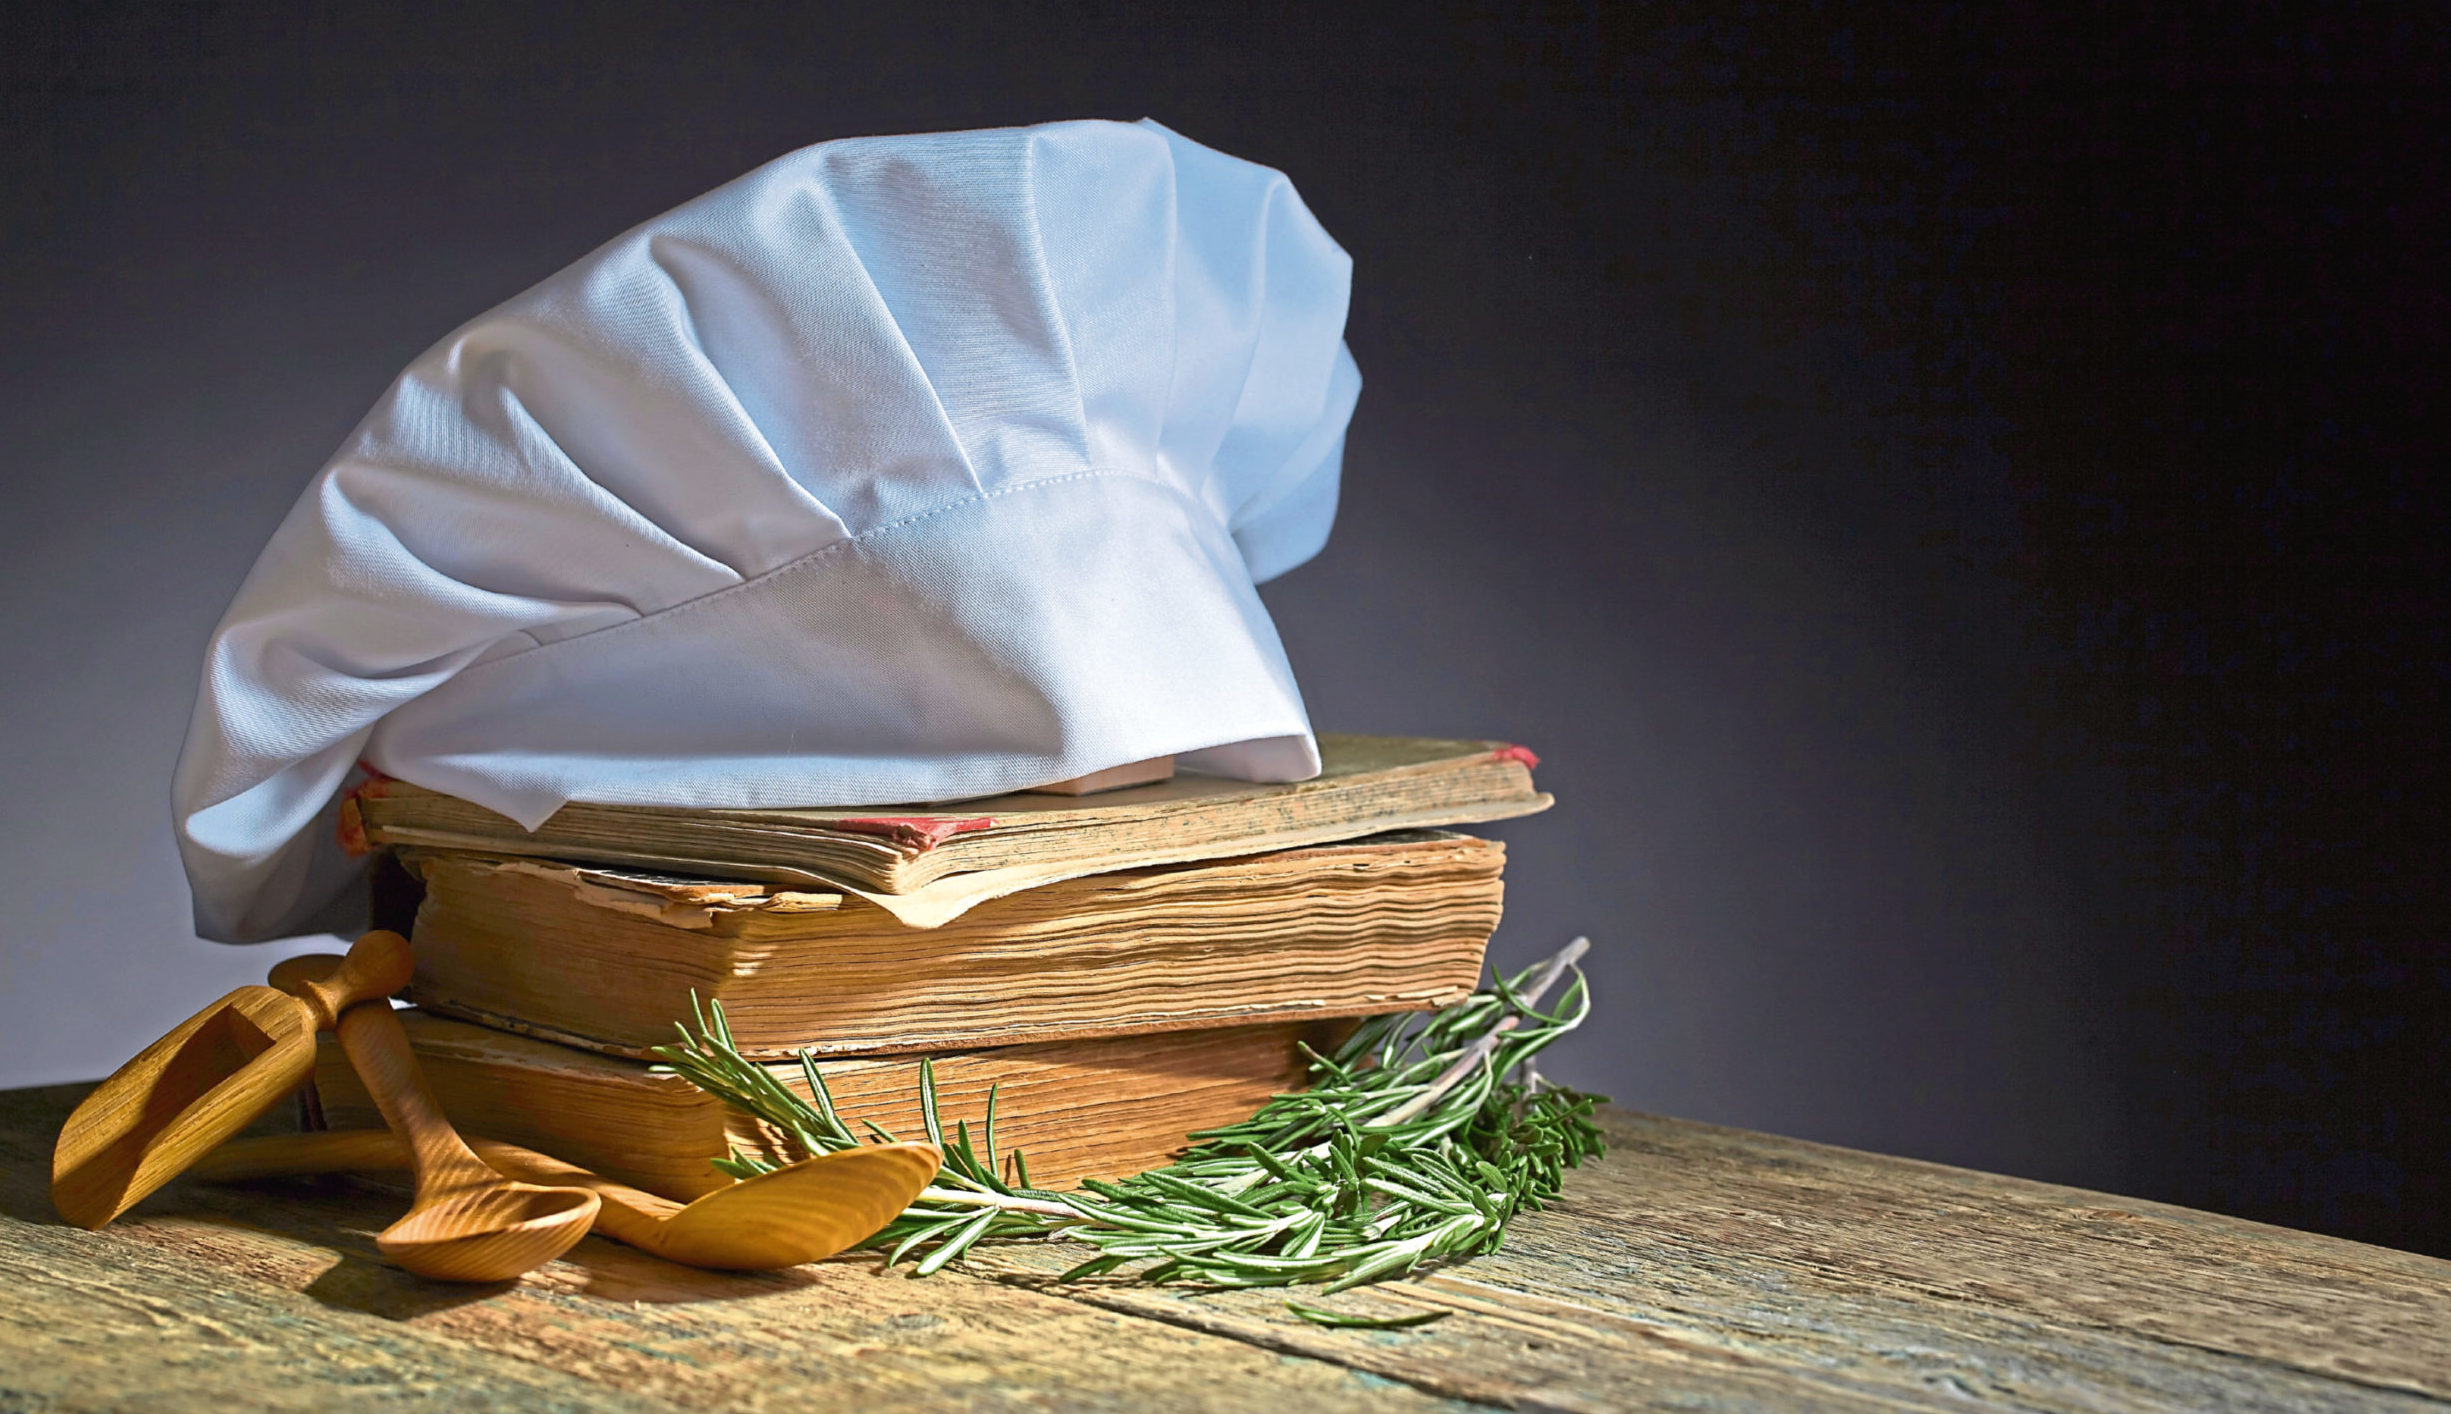 Old culinary books , chef hat and wooden spoons . Kitchen accessories on the old wooden table .; Shutterstock ID 719175079; Purchase Order: -